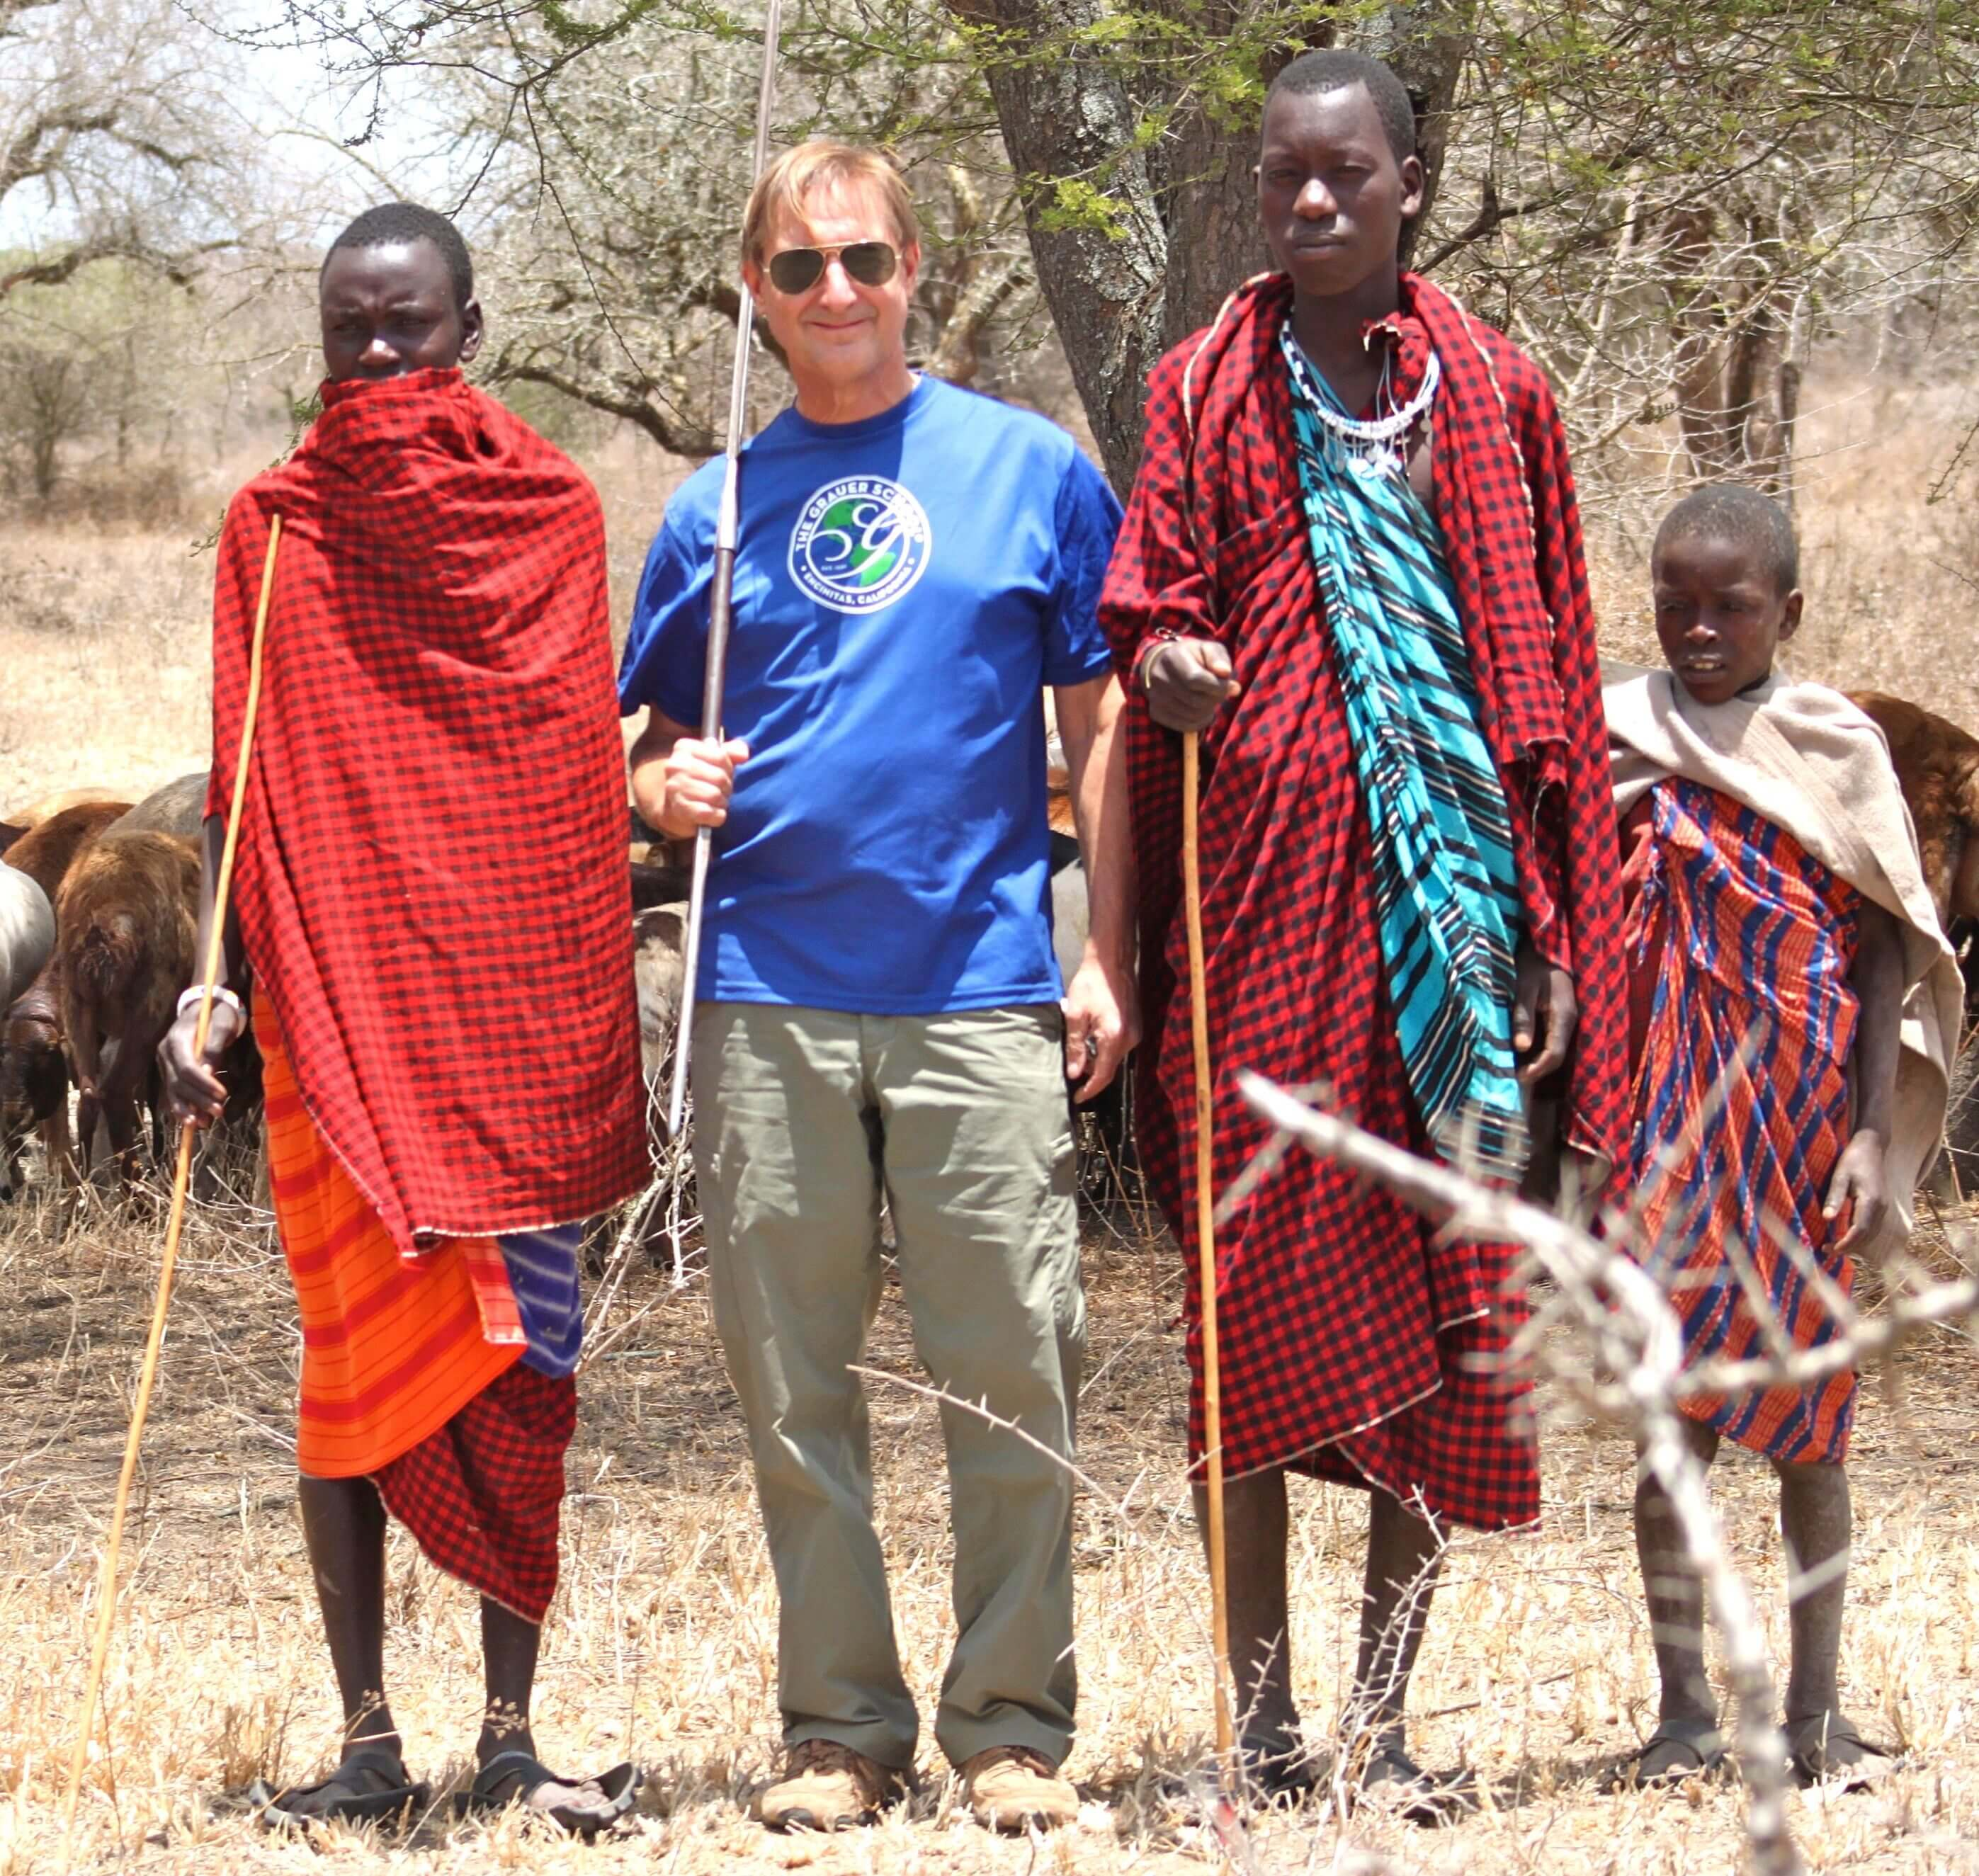 Dr. Grauer and the Maasai herdsmen